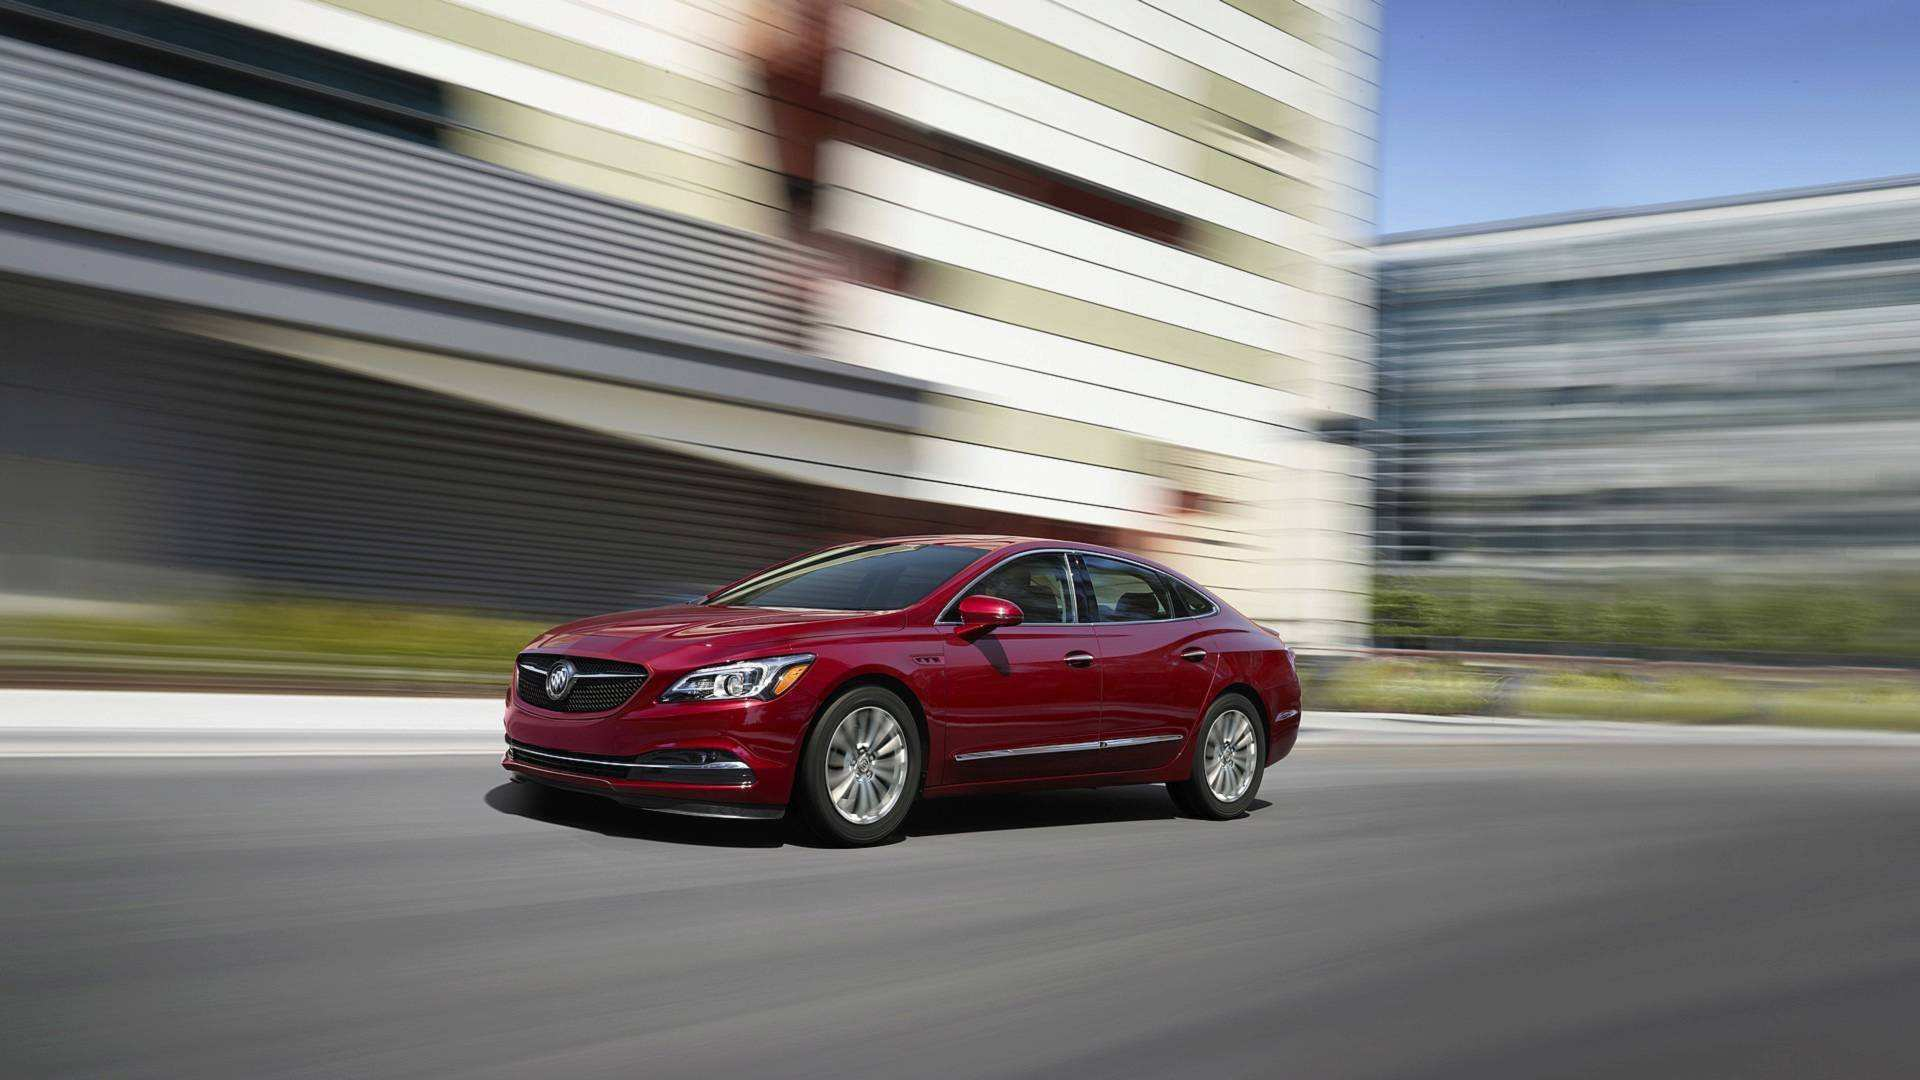 58 Concept of New Buick Lacrosse 2019 Reviews Concept Redesign And Review History for New Buick Lacrosse 2019 Reviews Concept Redesign And Review